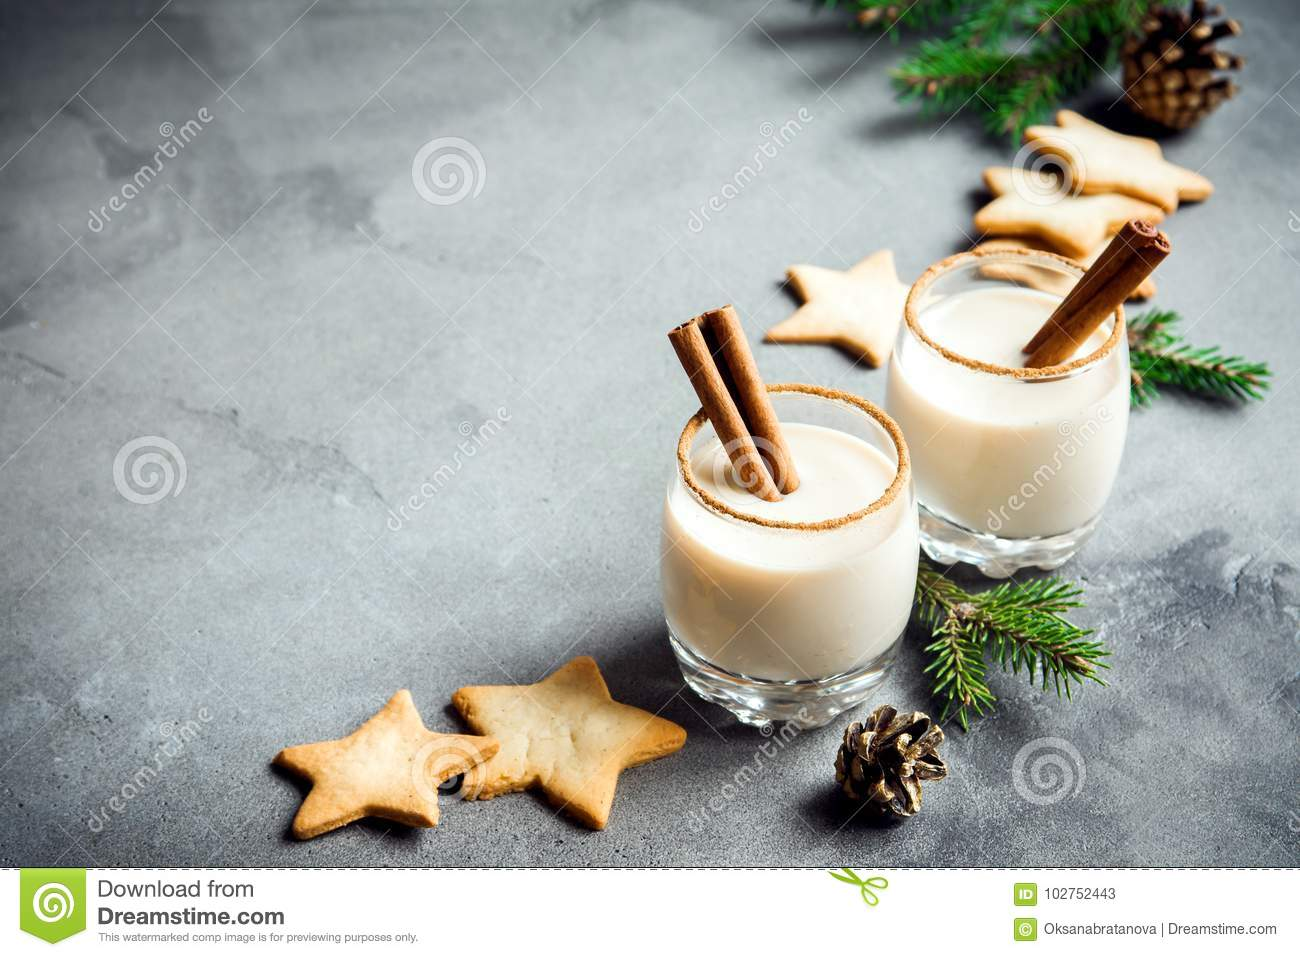 Christmas Background With Eggnog And Cookies Stock Image - Image of ...